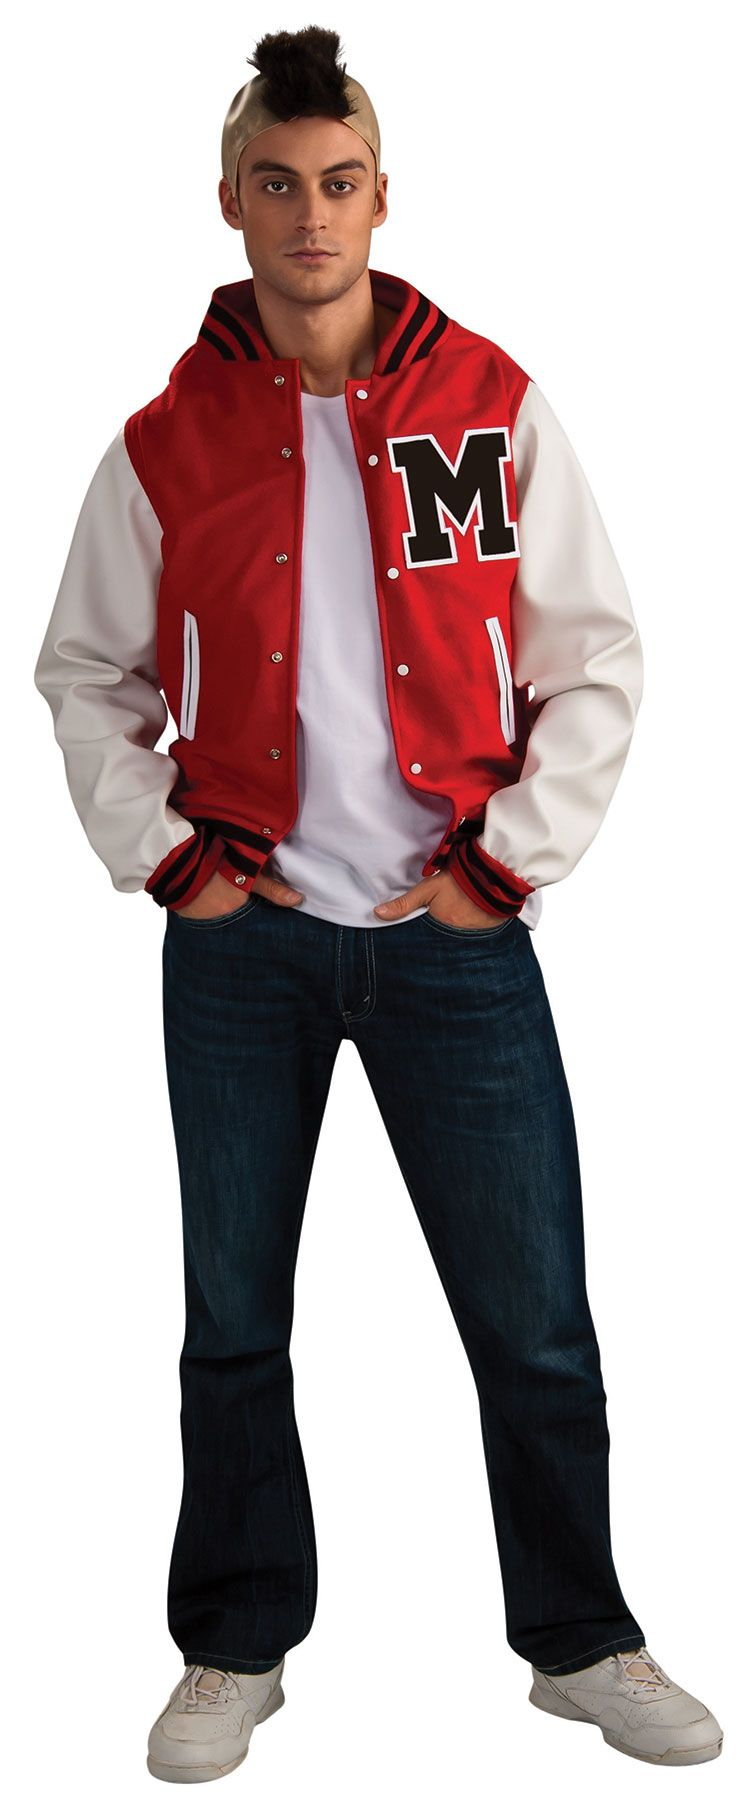 Glee Adult Puck Football Player Costume Jacket $49.99 ...